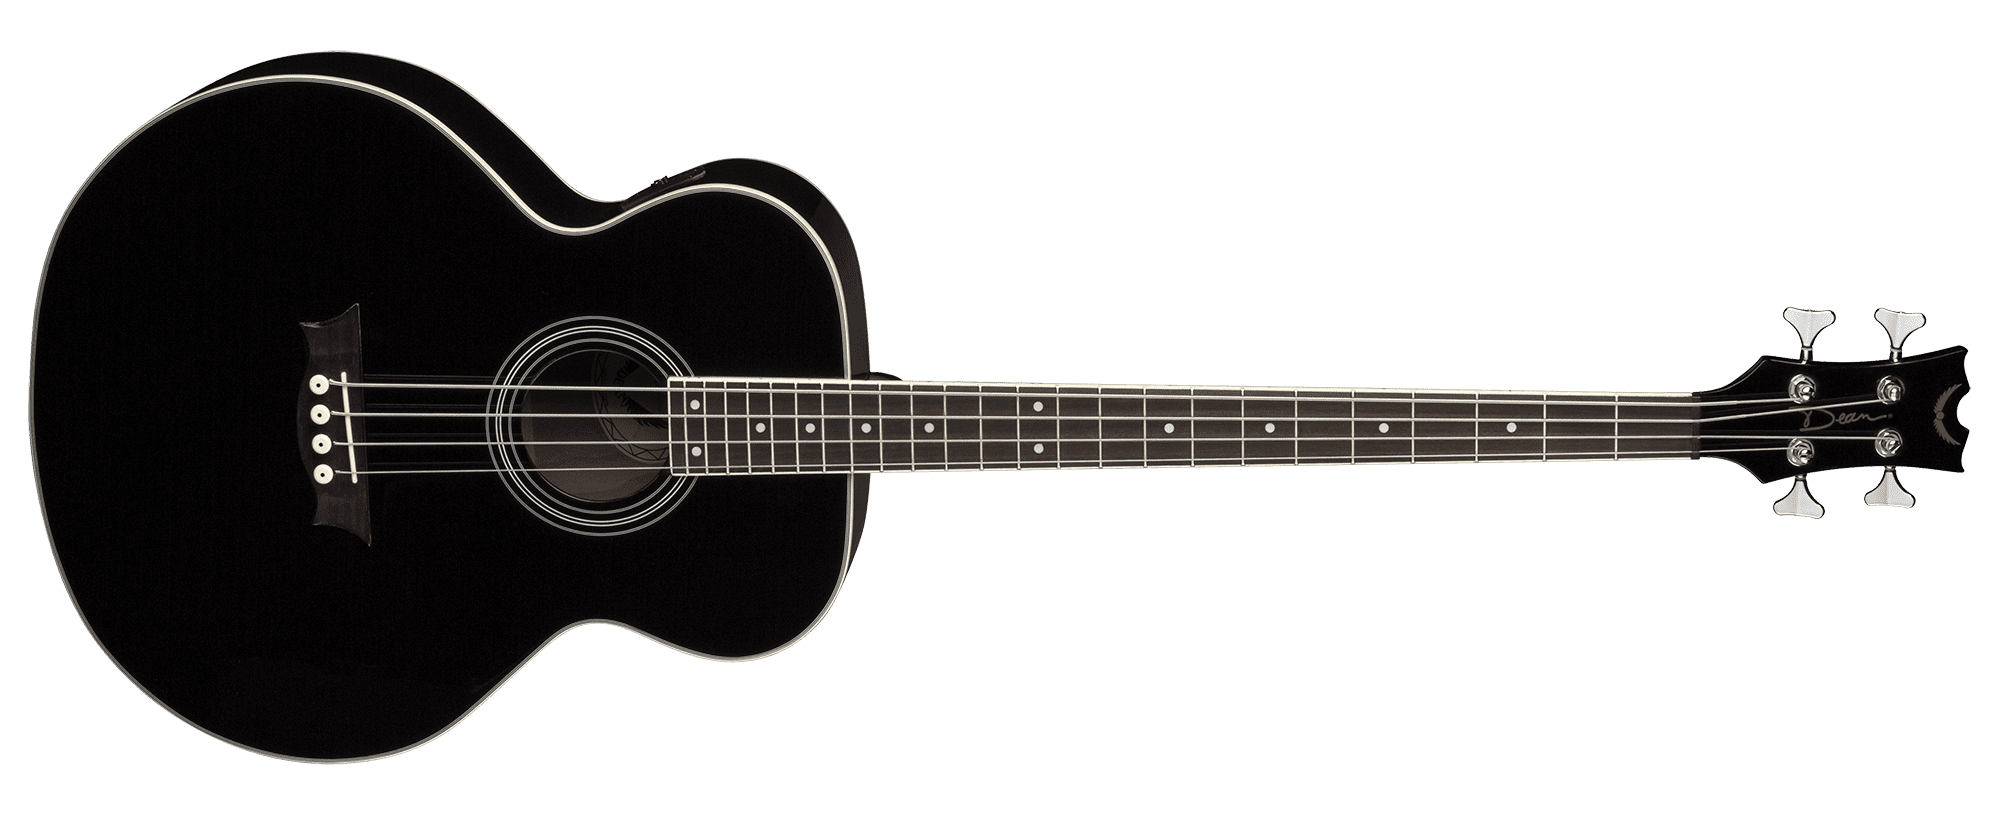 Youtube clipart guitar. Acoustic electric bass classic